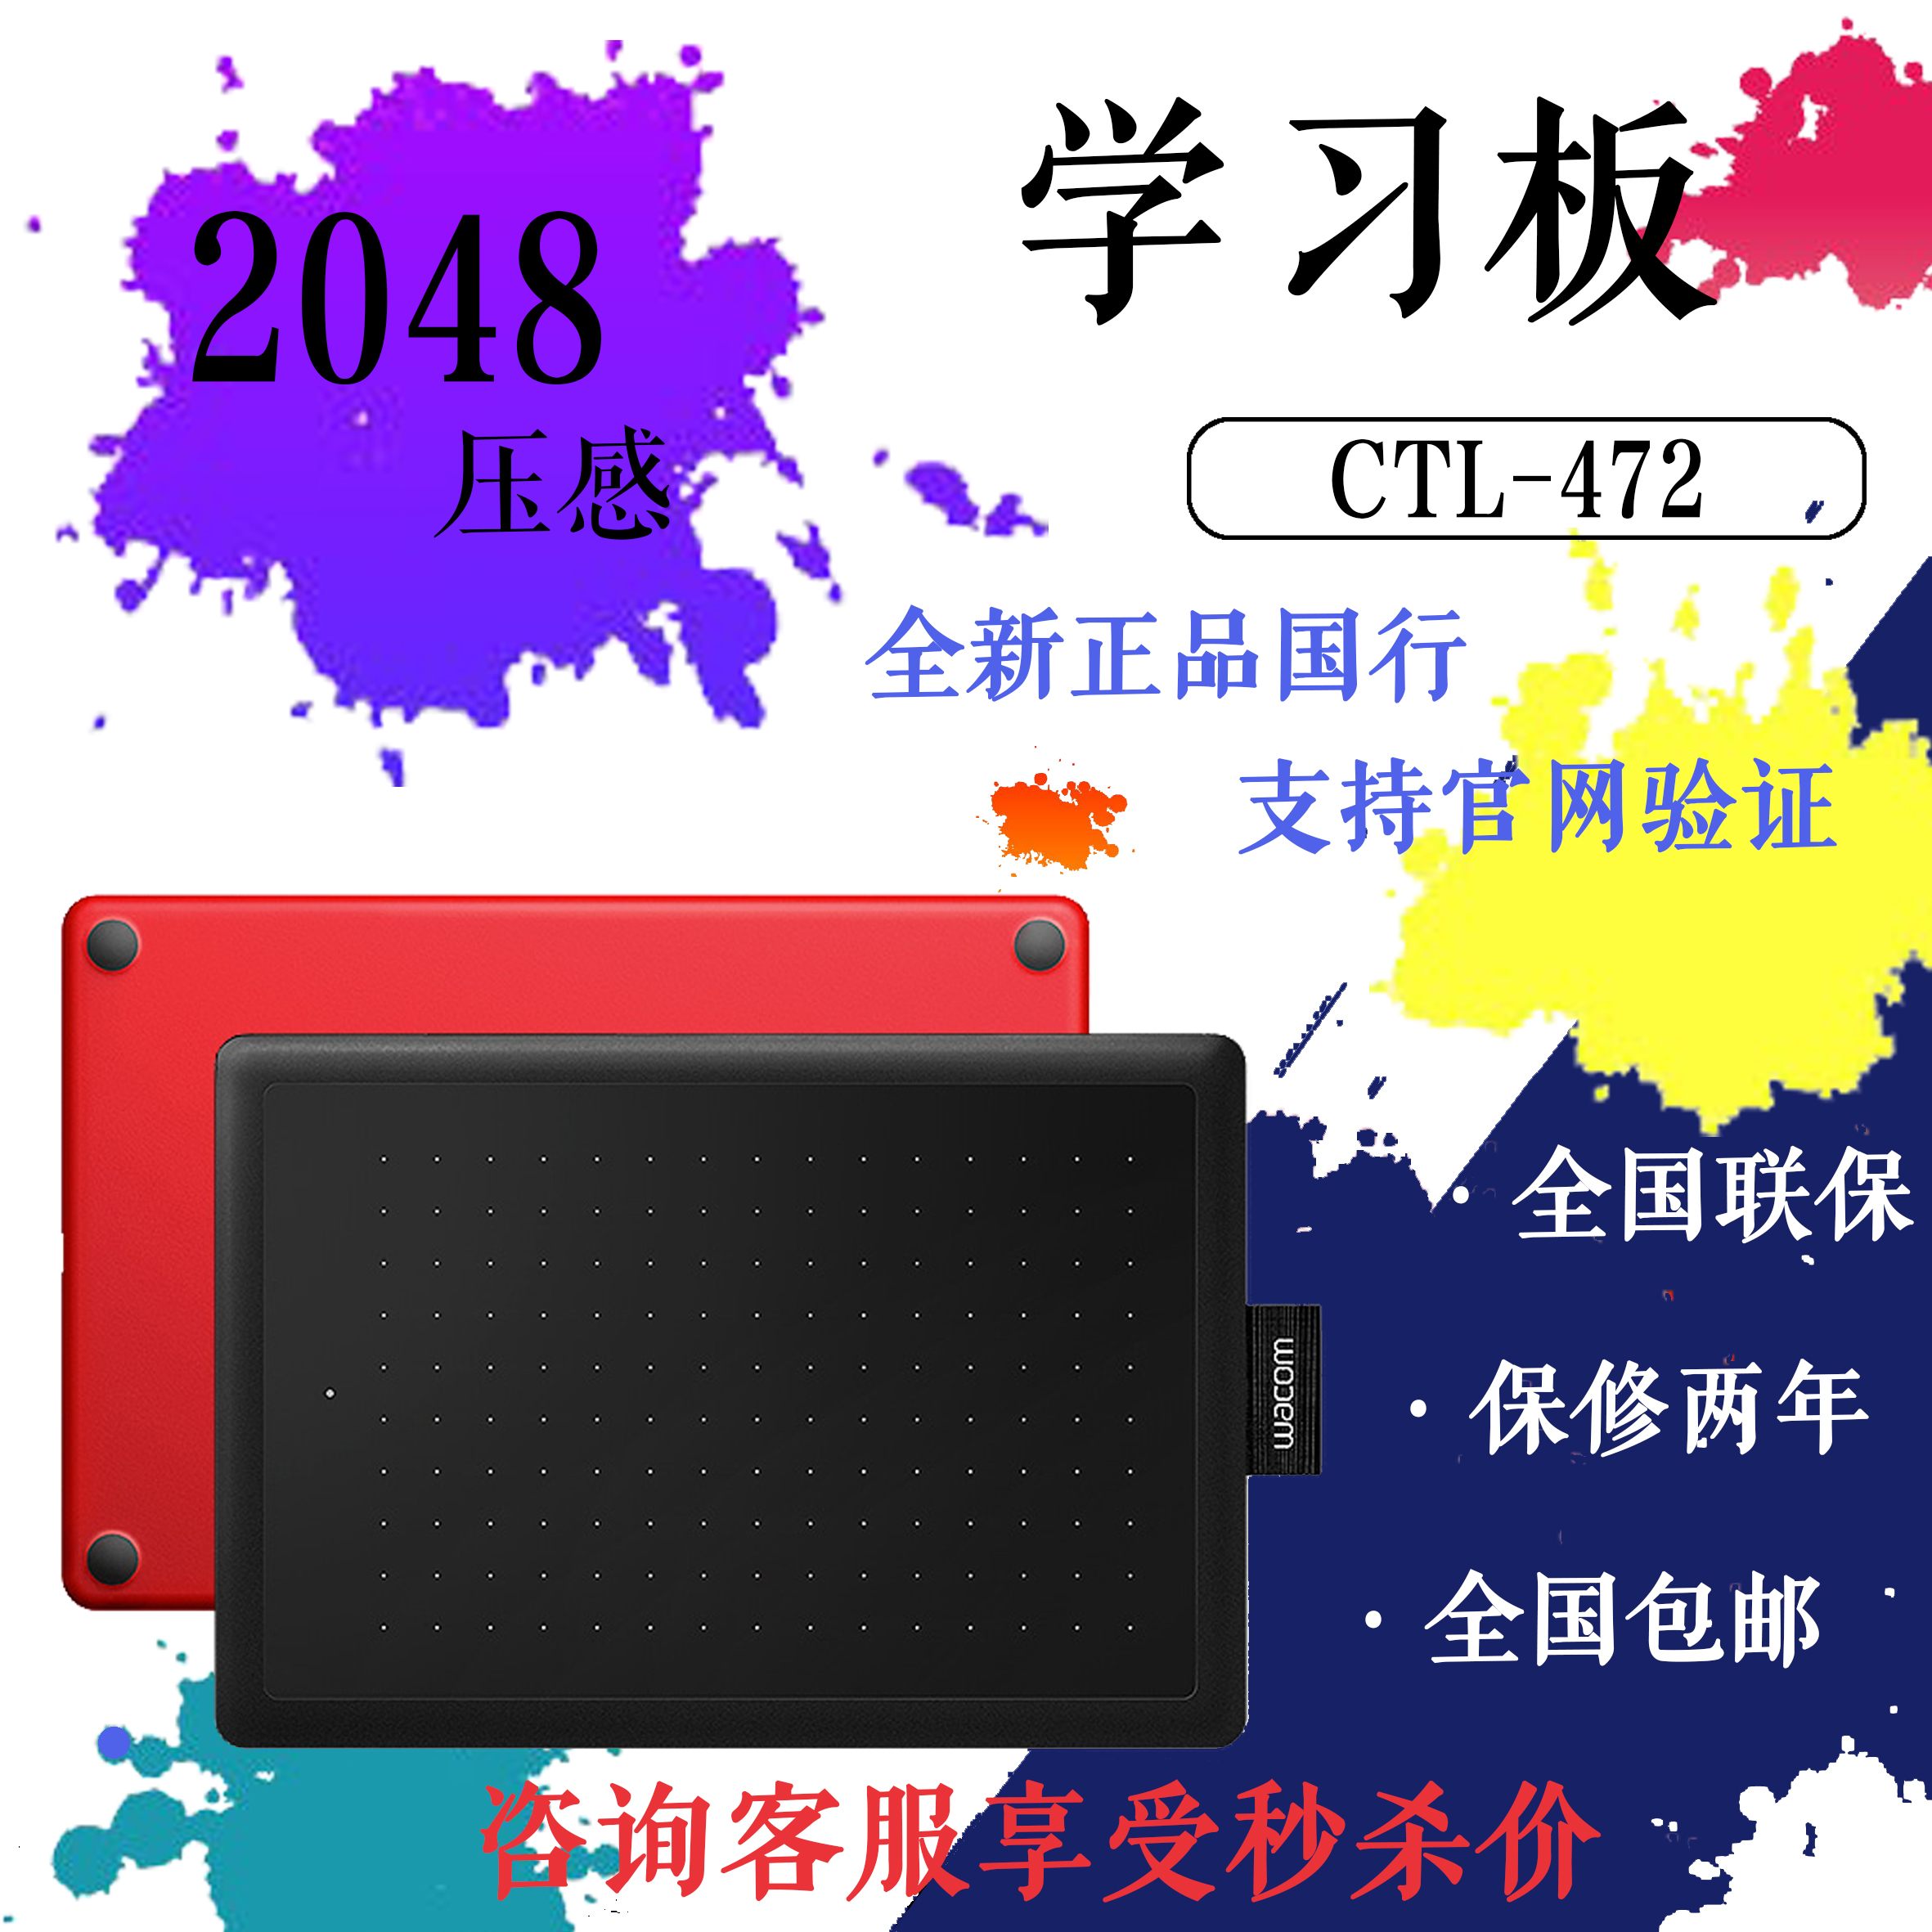 Wacom new CTL-472 Digital Learning Board small red black version s number  handwriting design 2048 pressure level